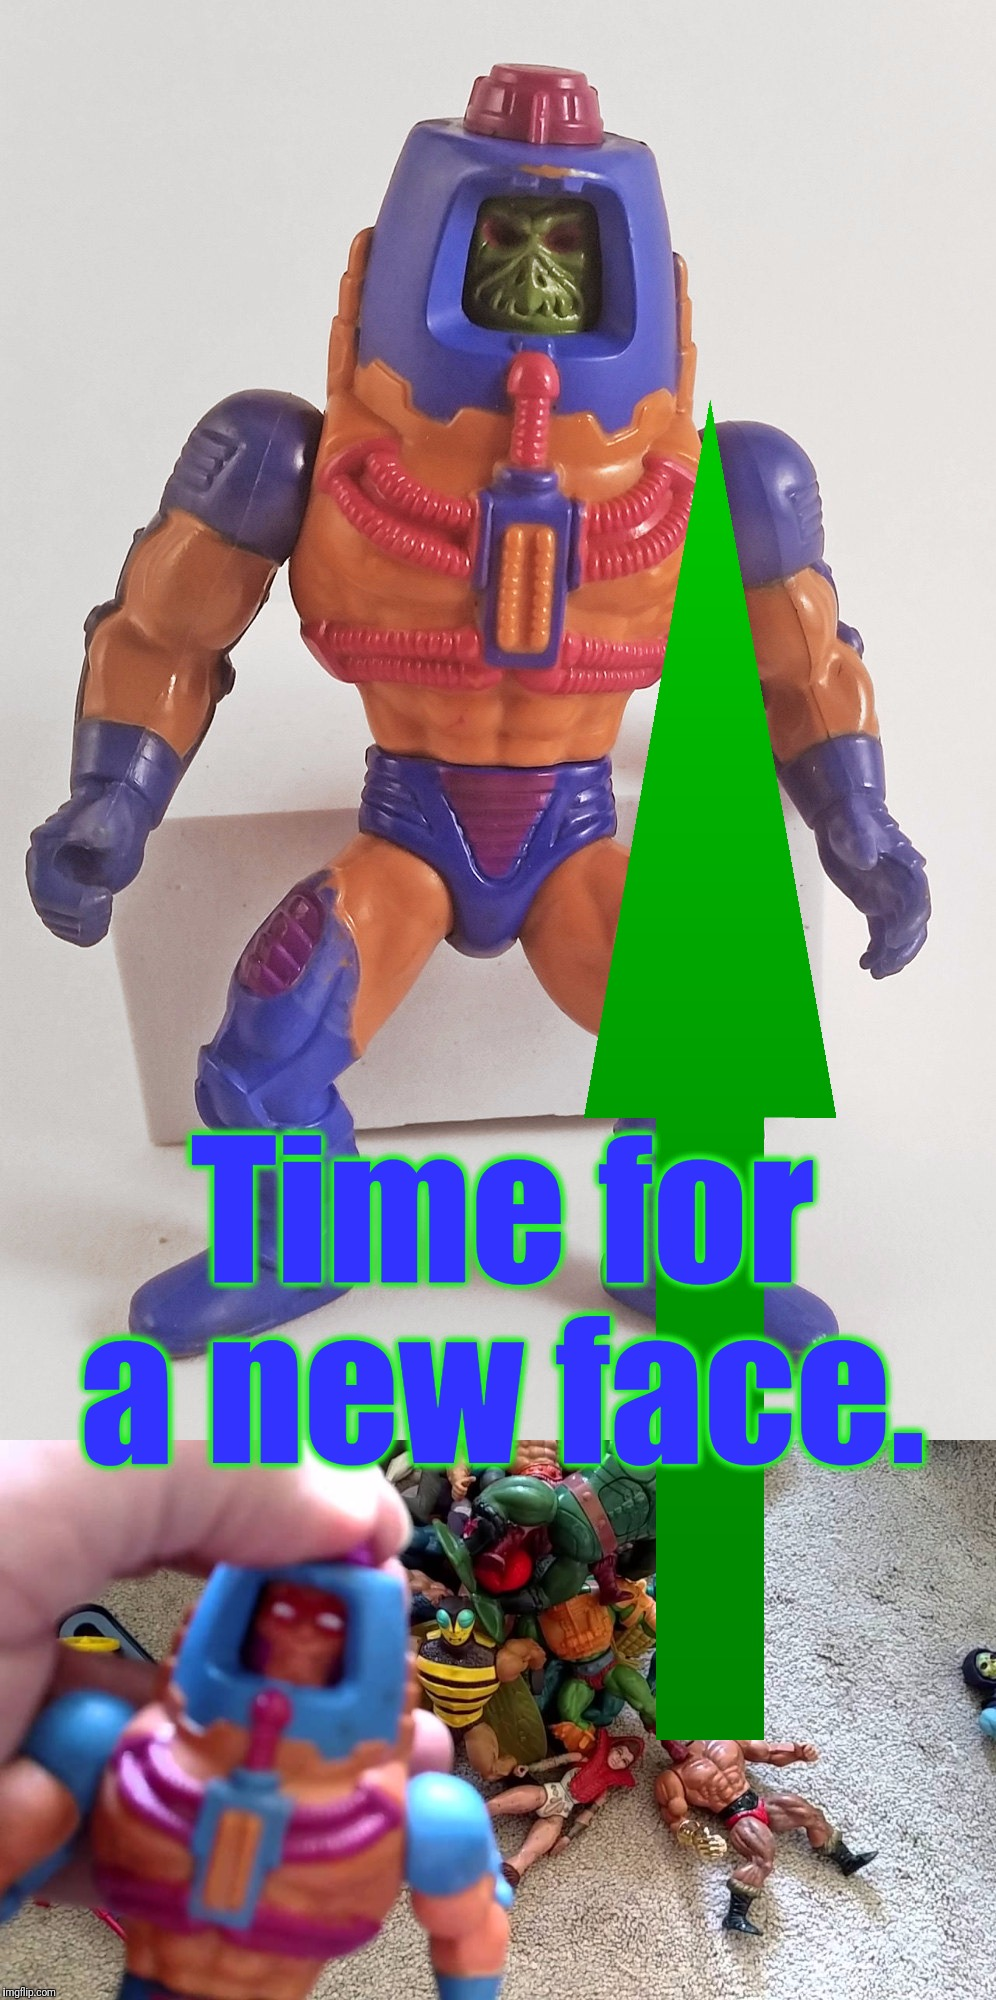 Time for a new face. | made w/ Imgflip meme maker